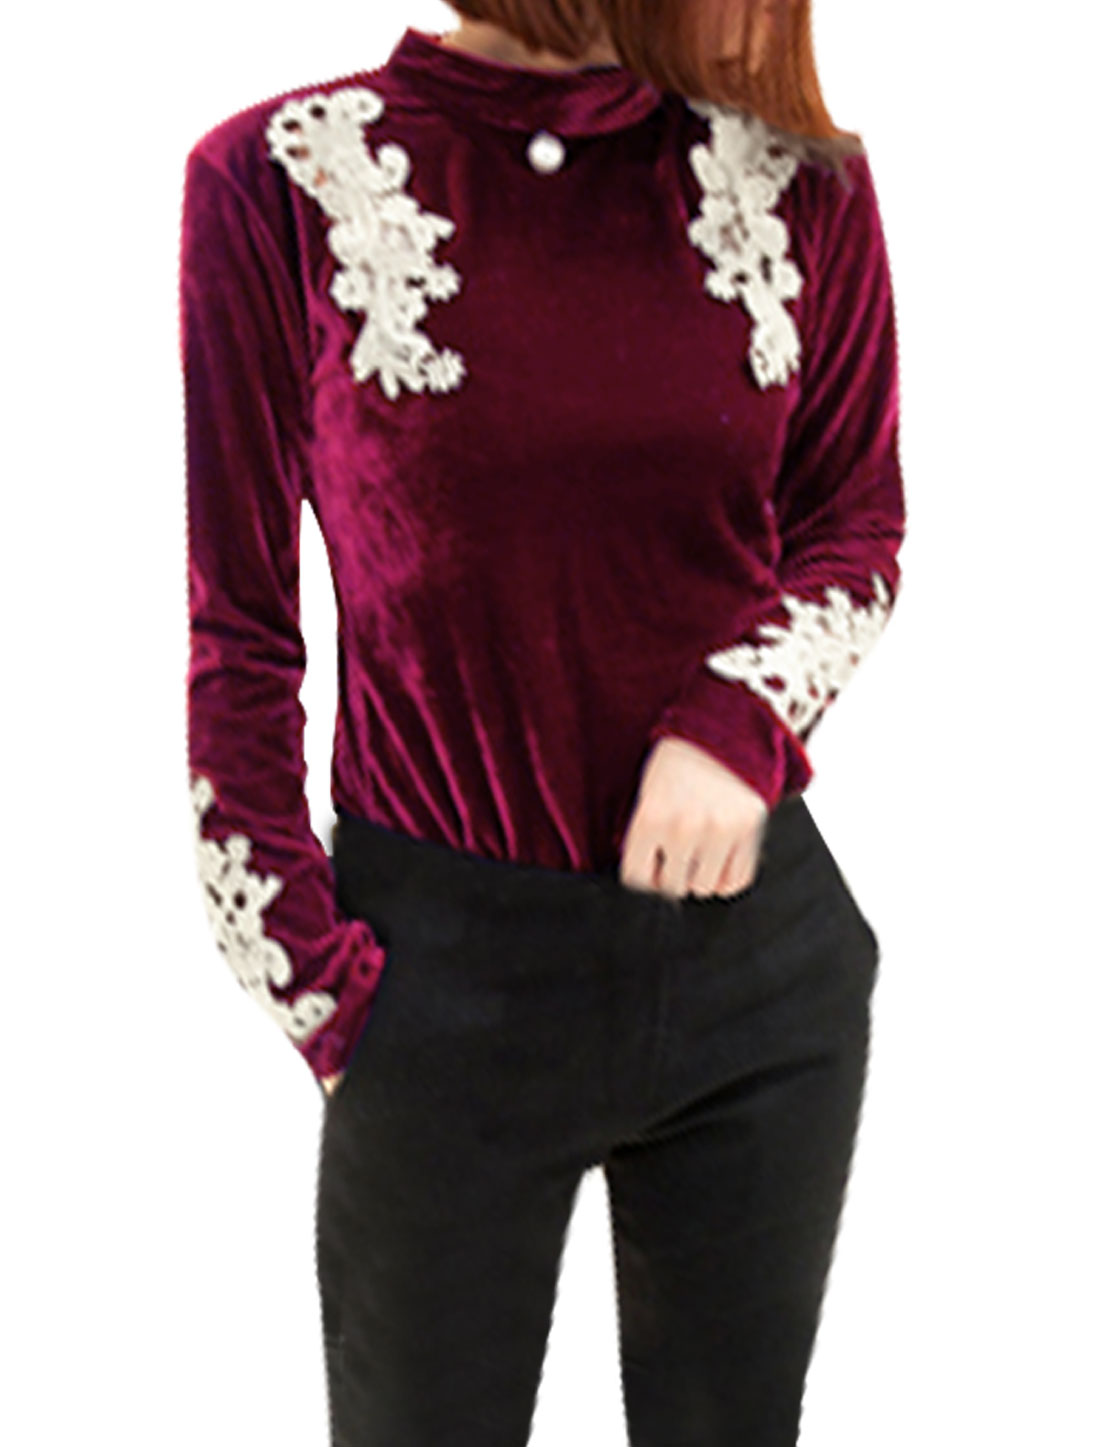 Woman Velvet Long-sleeved Button Closure Embellished Fashionable Shirt Burgundy Xs